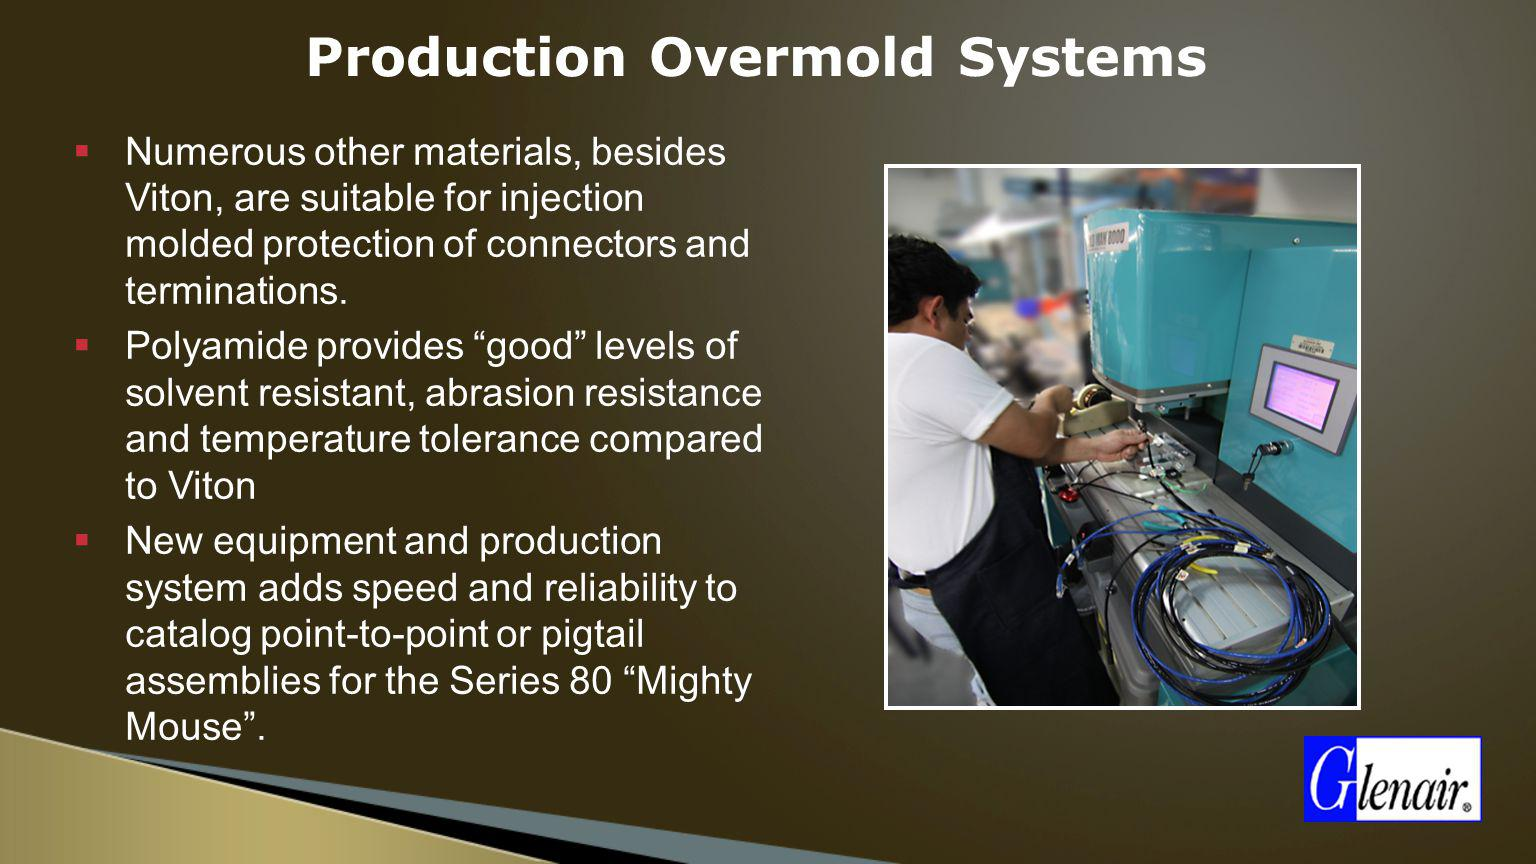 Production Overmold Systems